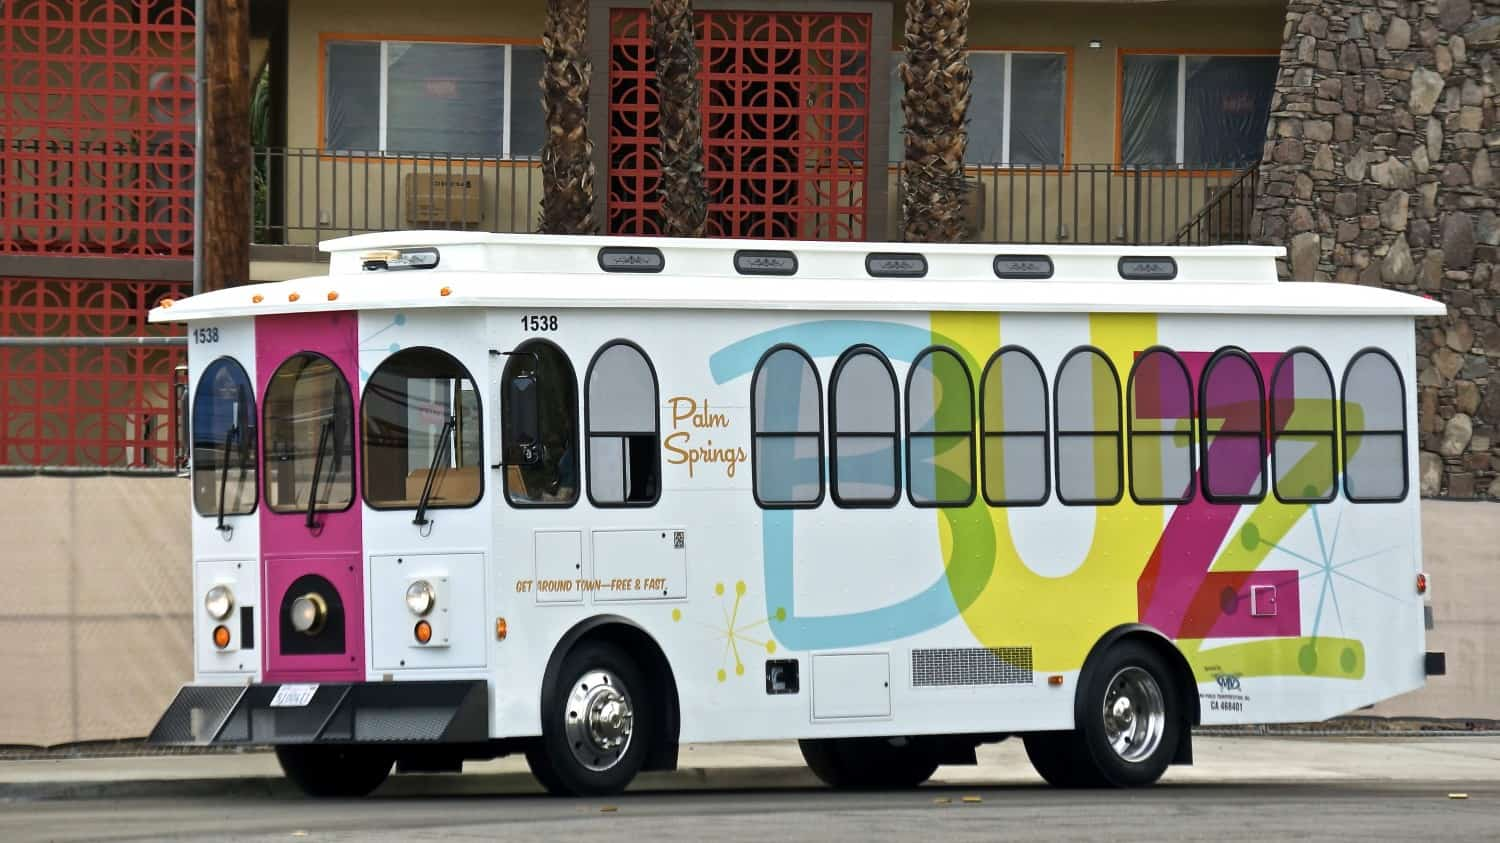 The pet-friendly Buzz Trolley in Palm Springs, CA